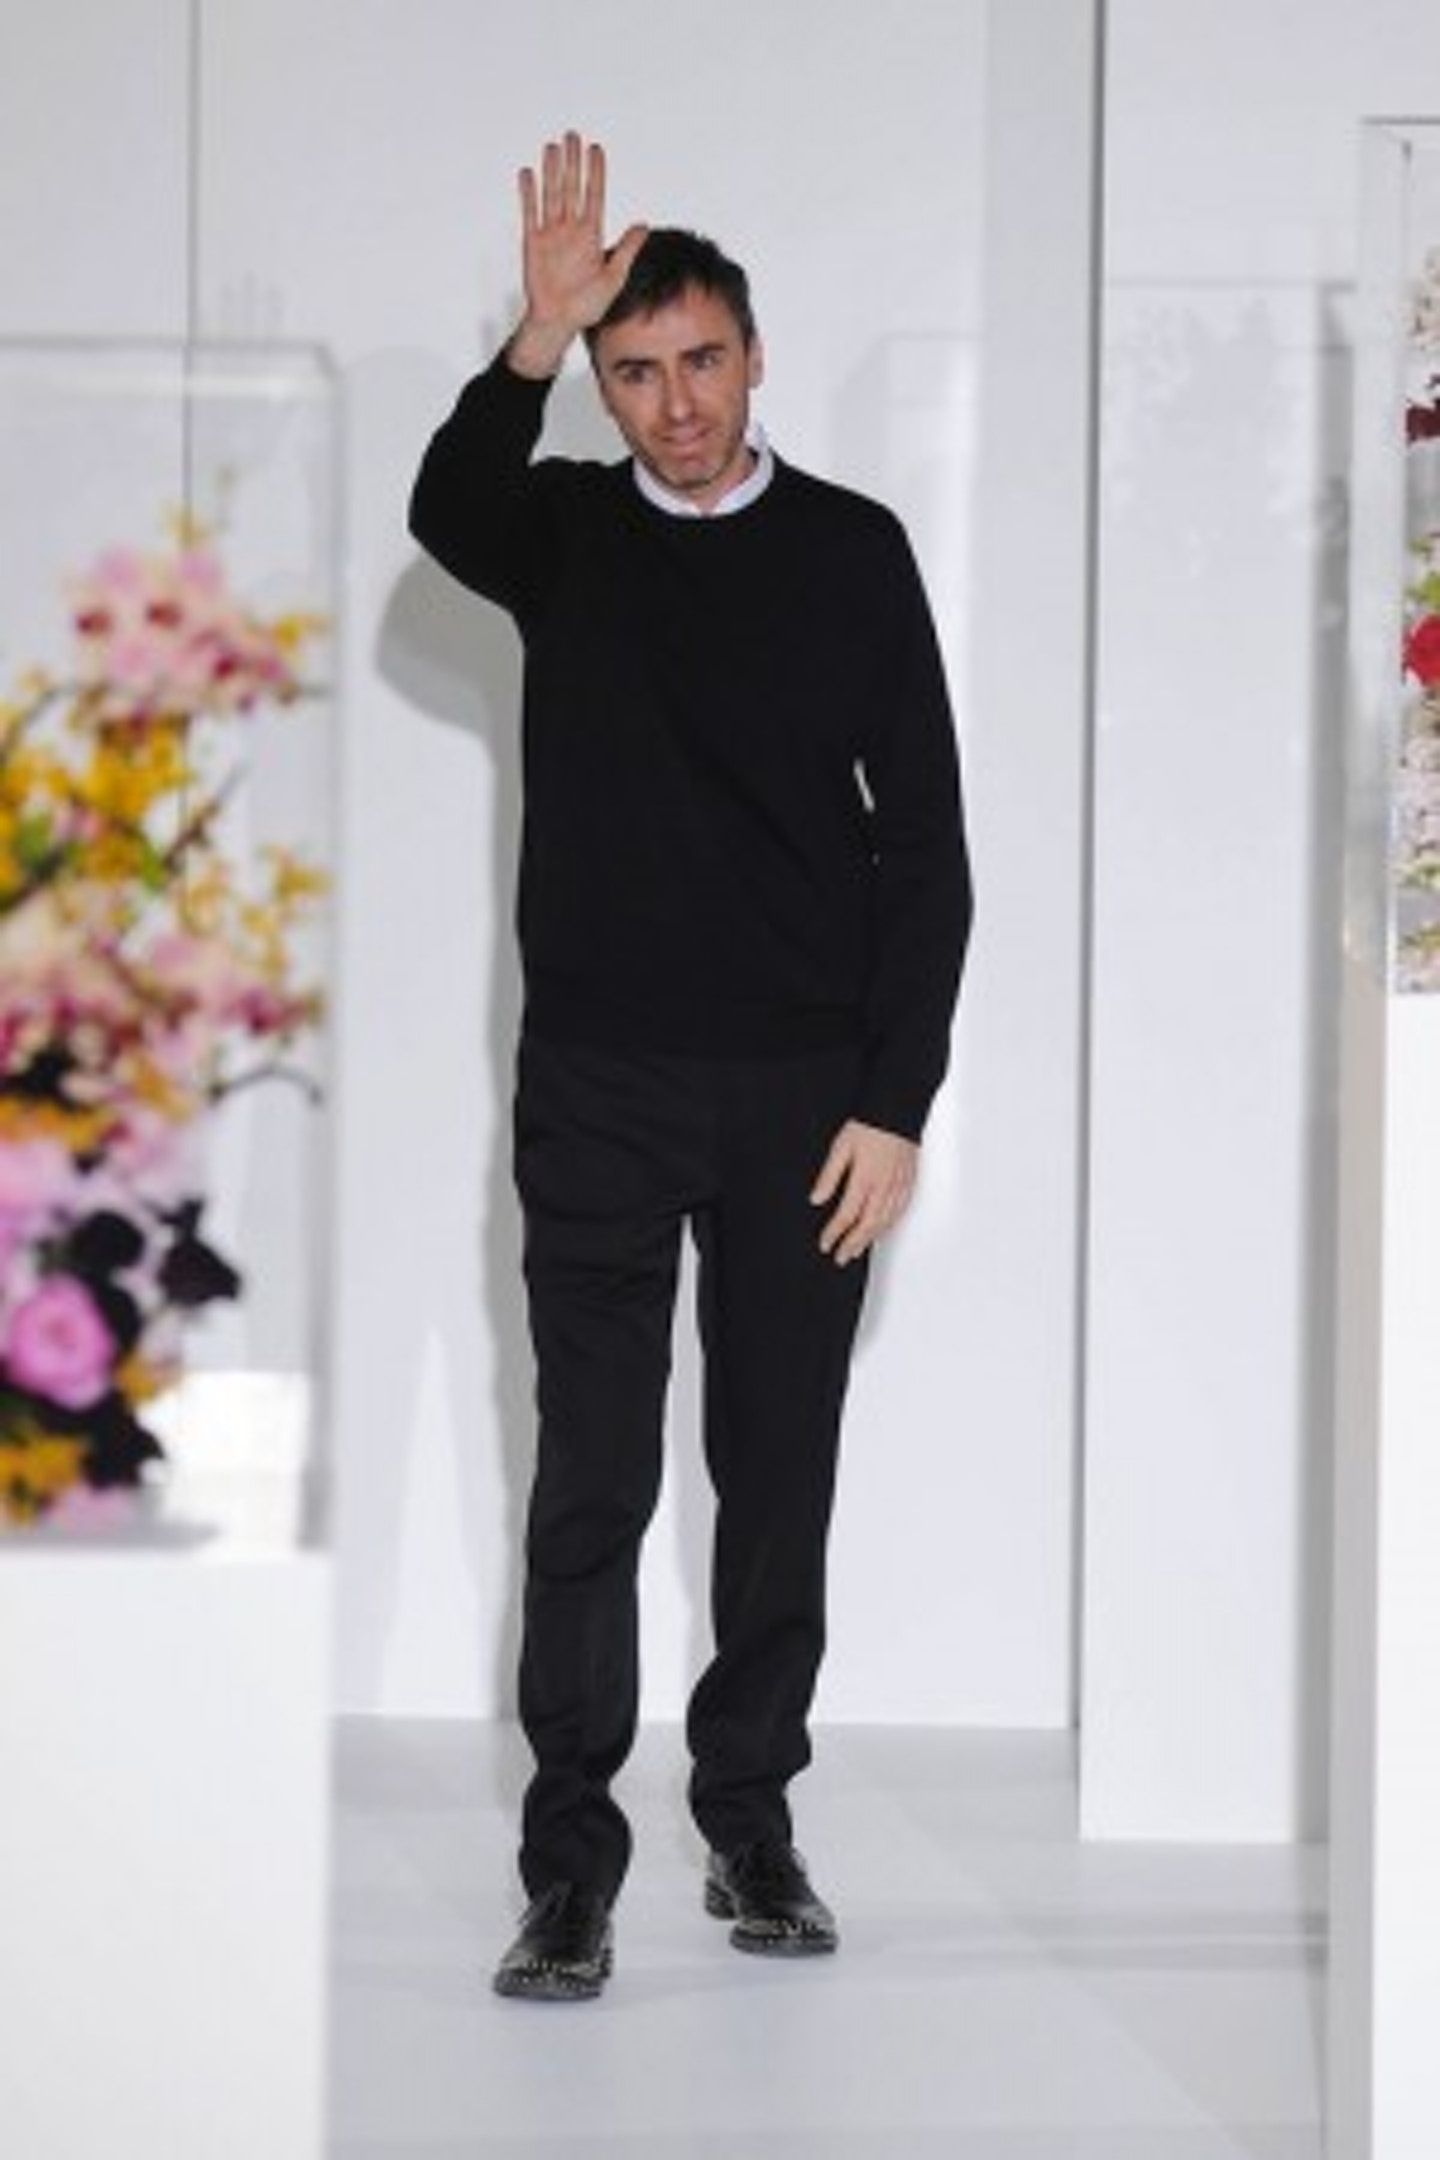 Raf Simons Named Creative Director of Dior